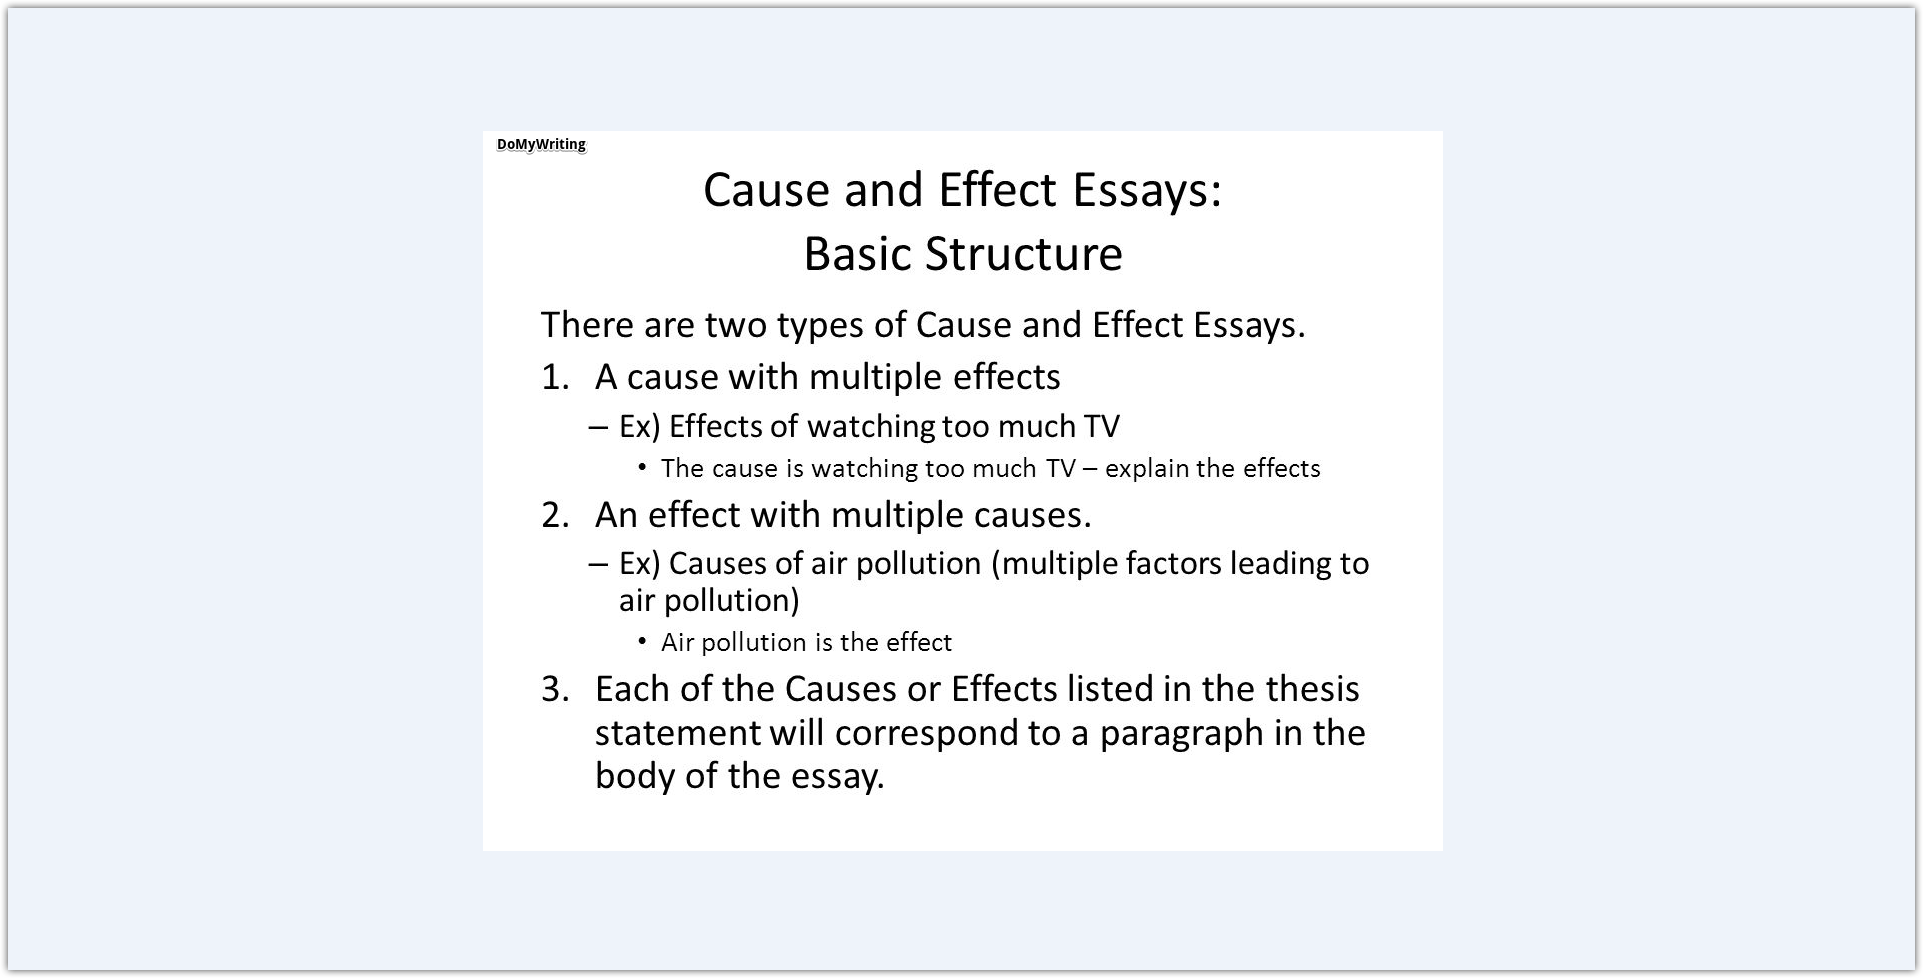 017 Essay Topics Cause And Effect Structure Archaicawful For 8th Grade List Class 10 Questions Macbeth Act 2 Full